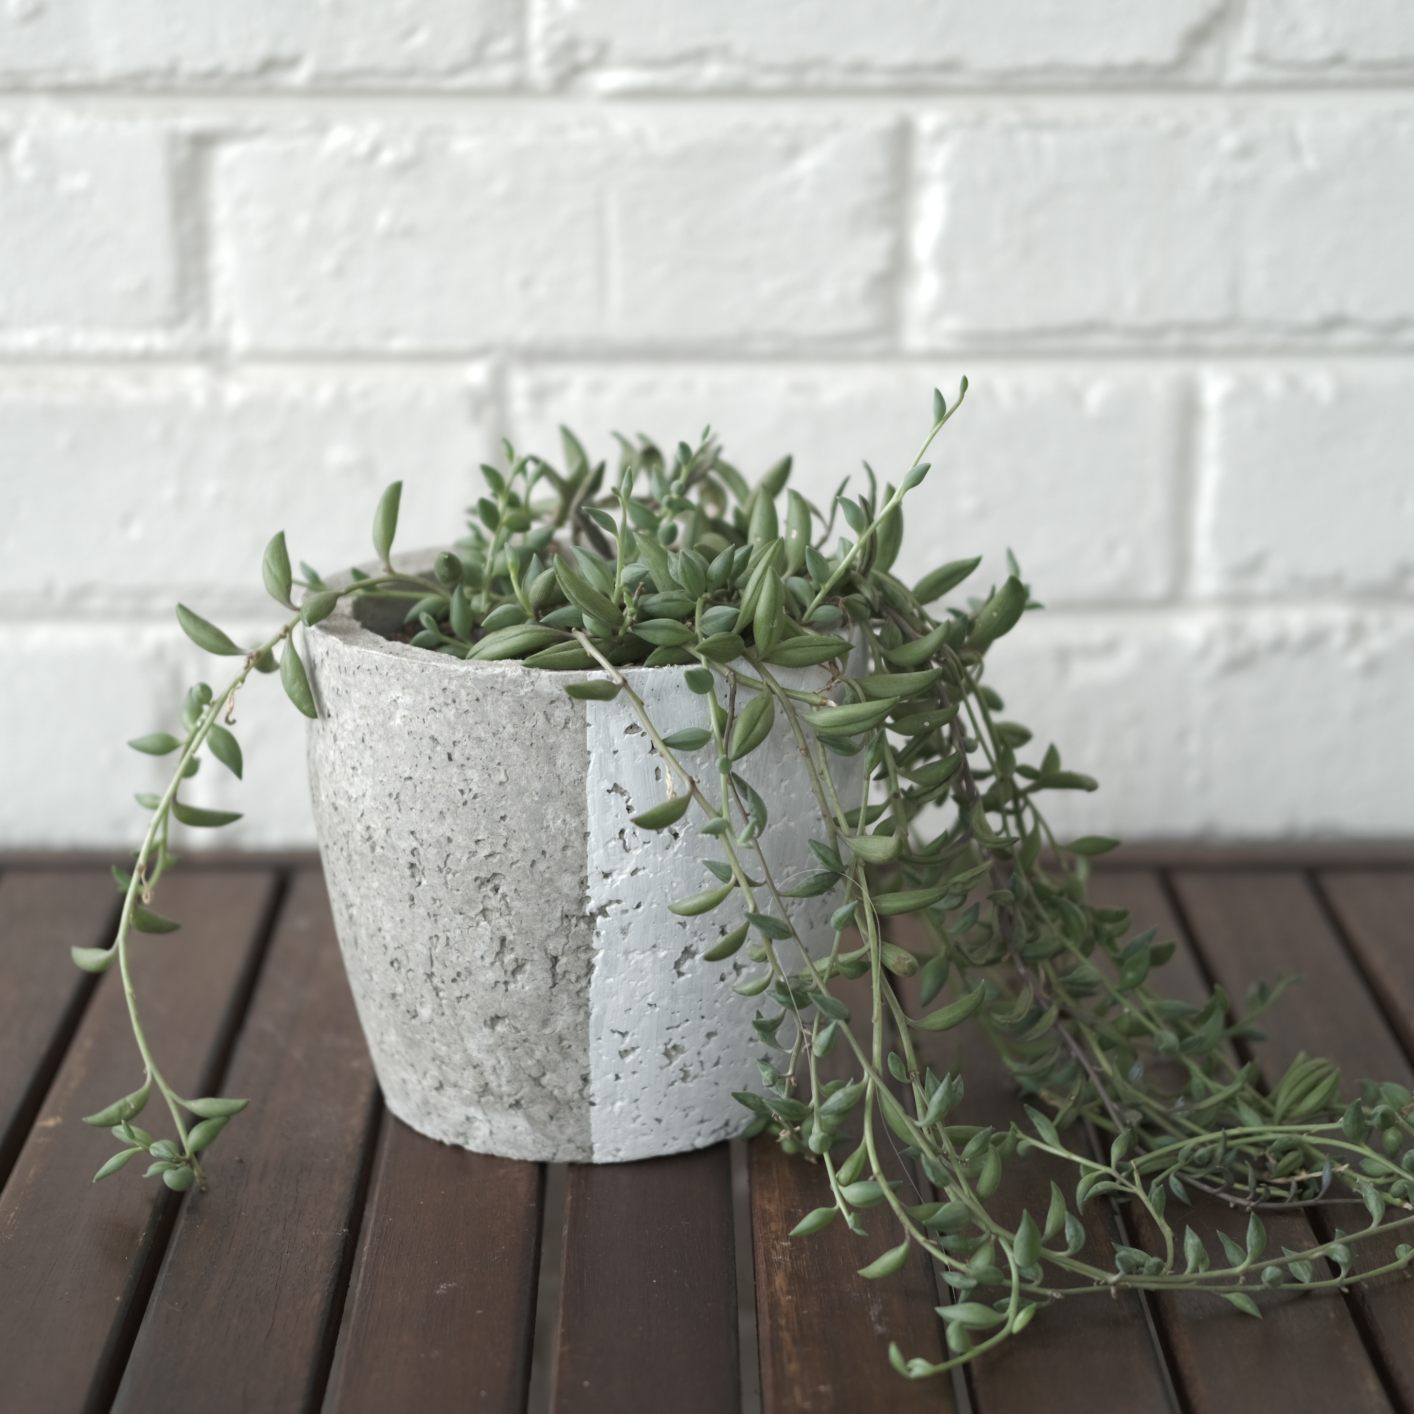 Cement-look with white plant pot